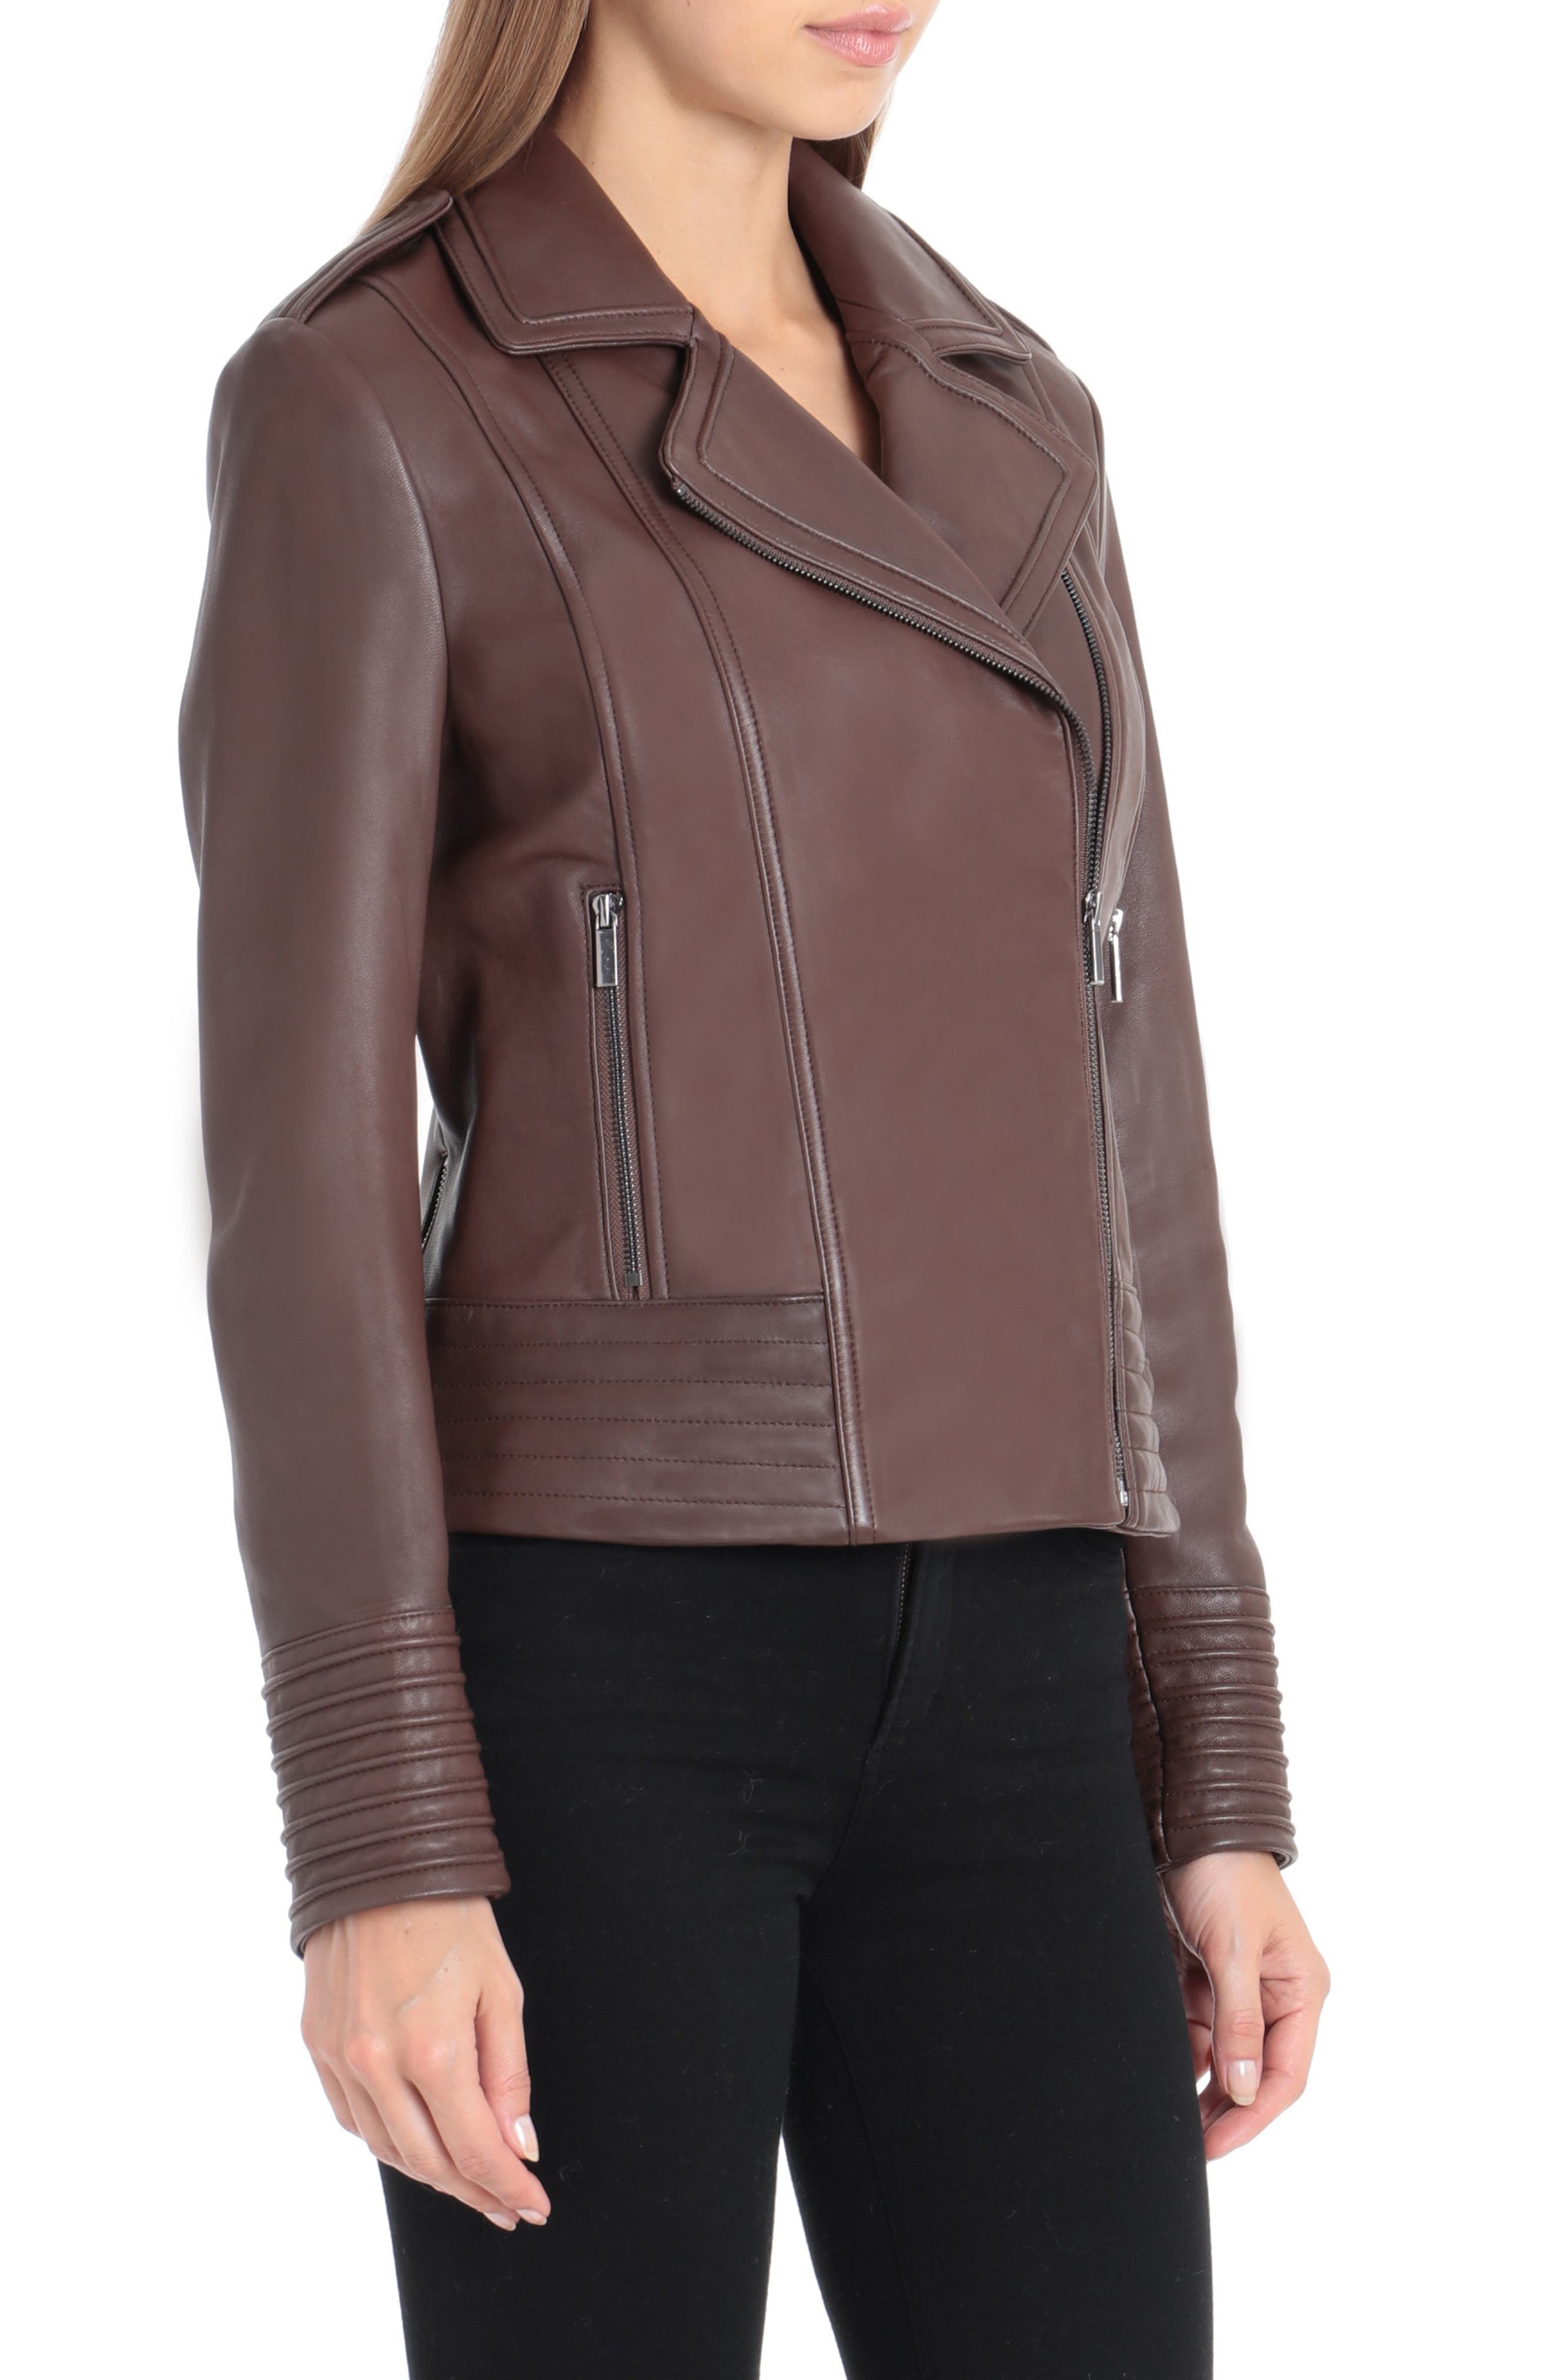 Gia Leather Biker Jacket,                             Alternate thumbnail 3, color,                             CHOCOLATE